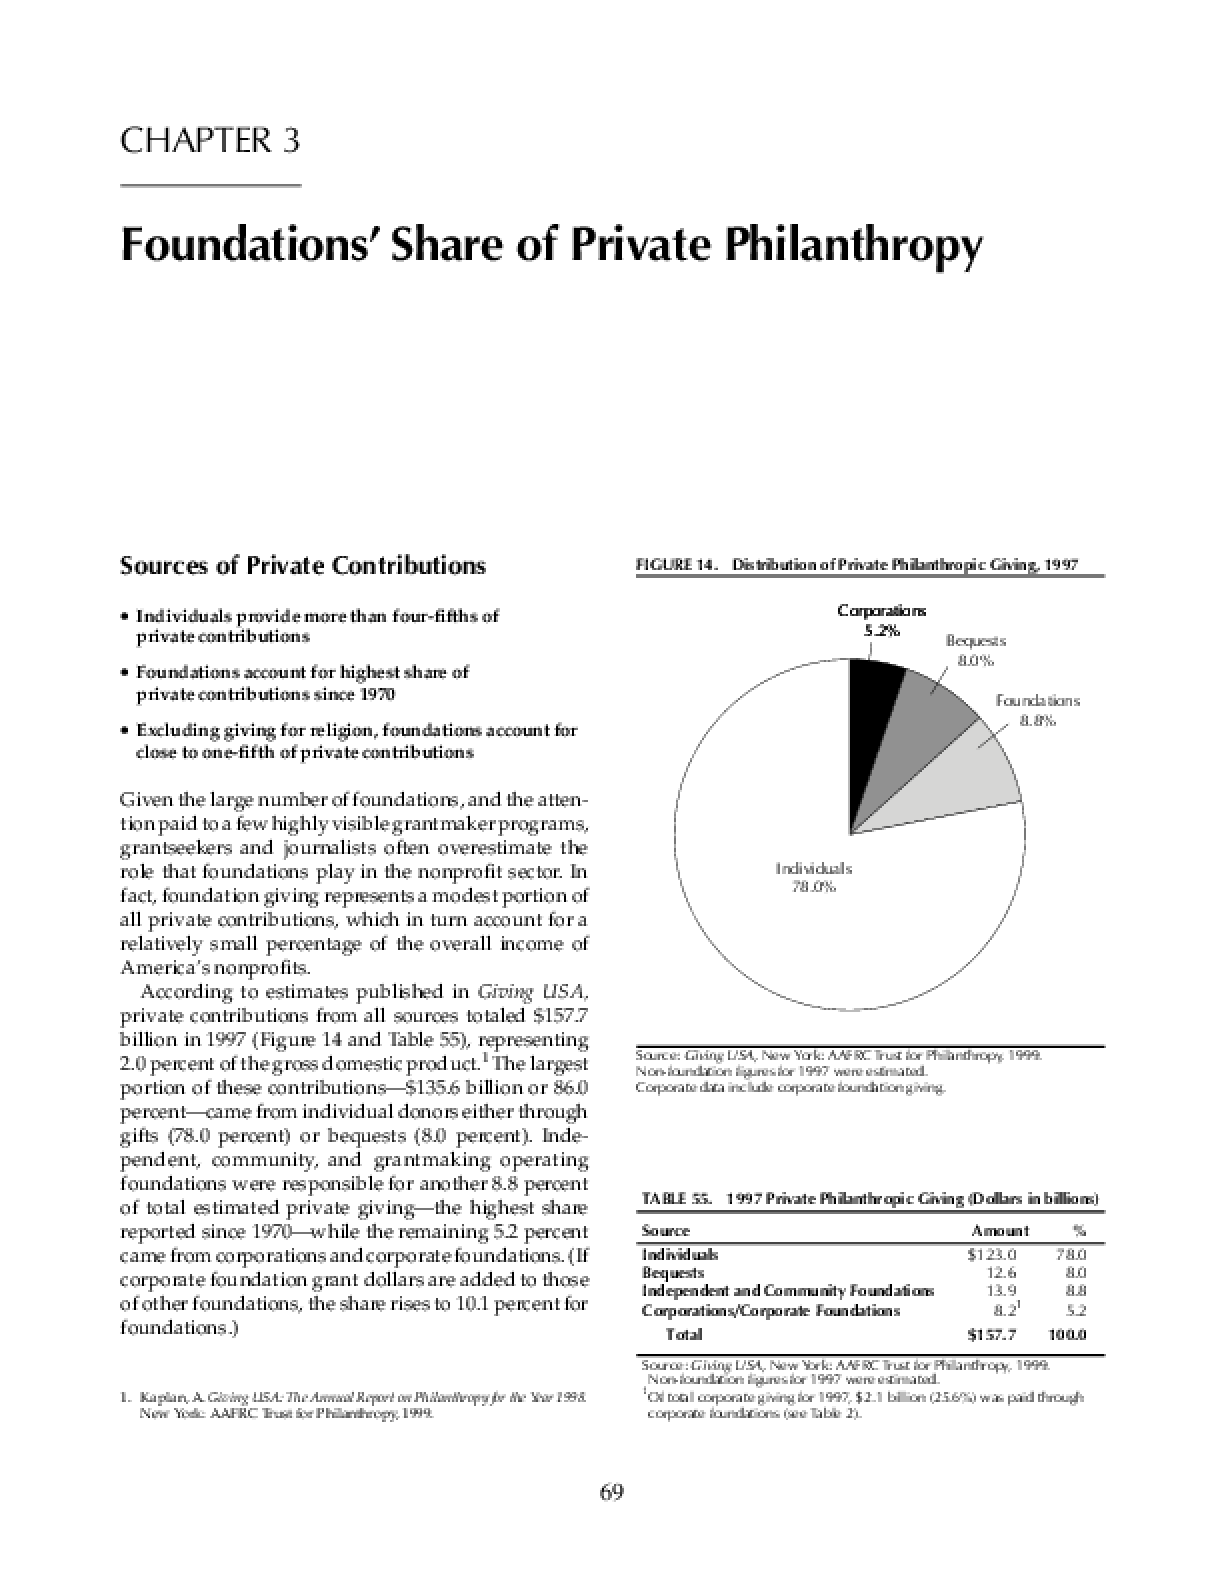 Foundations' Share of Private Philanthropy 1999